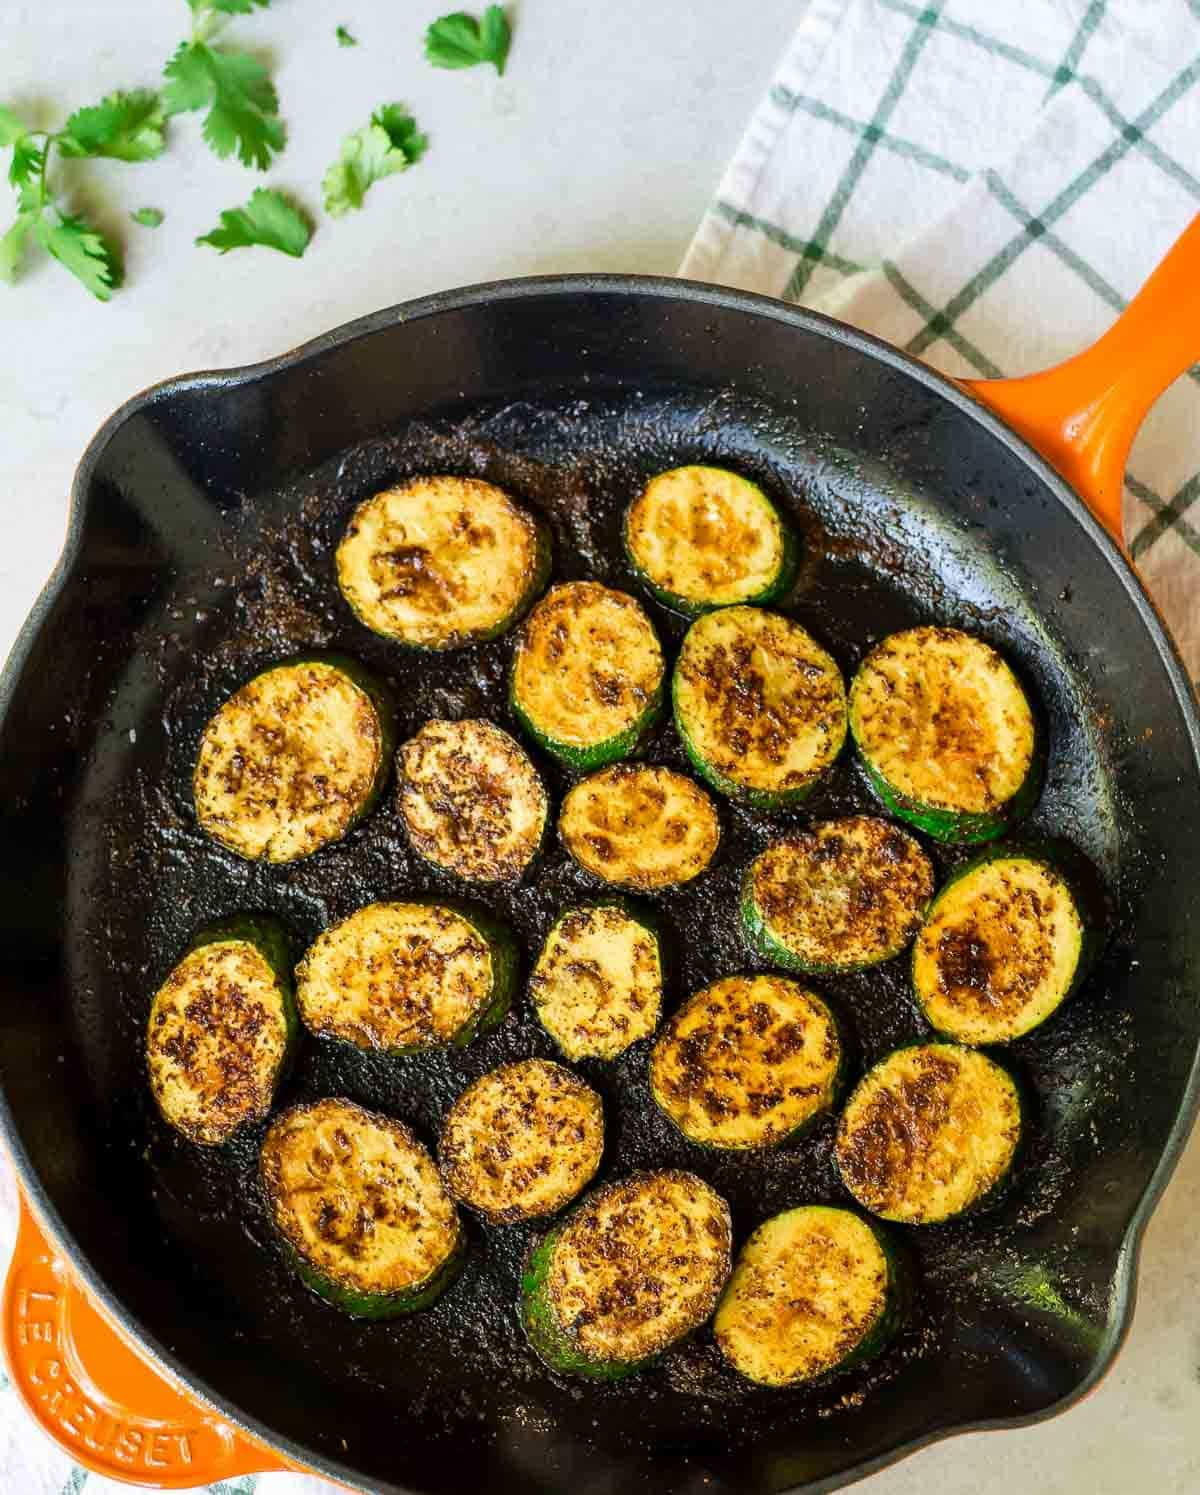 Blackened Zucchini Tacos - Quick, easy, healthy and full of flavor - even meat eaters will love these!